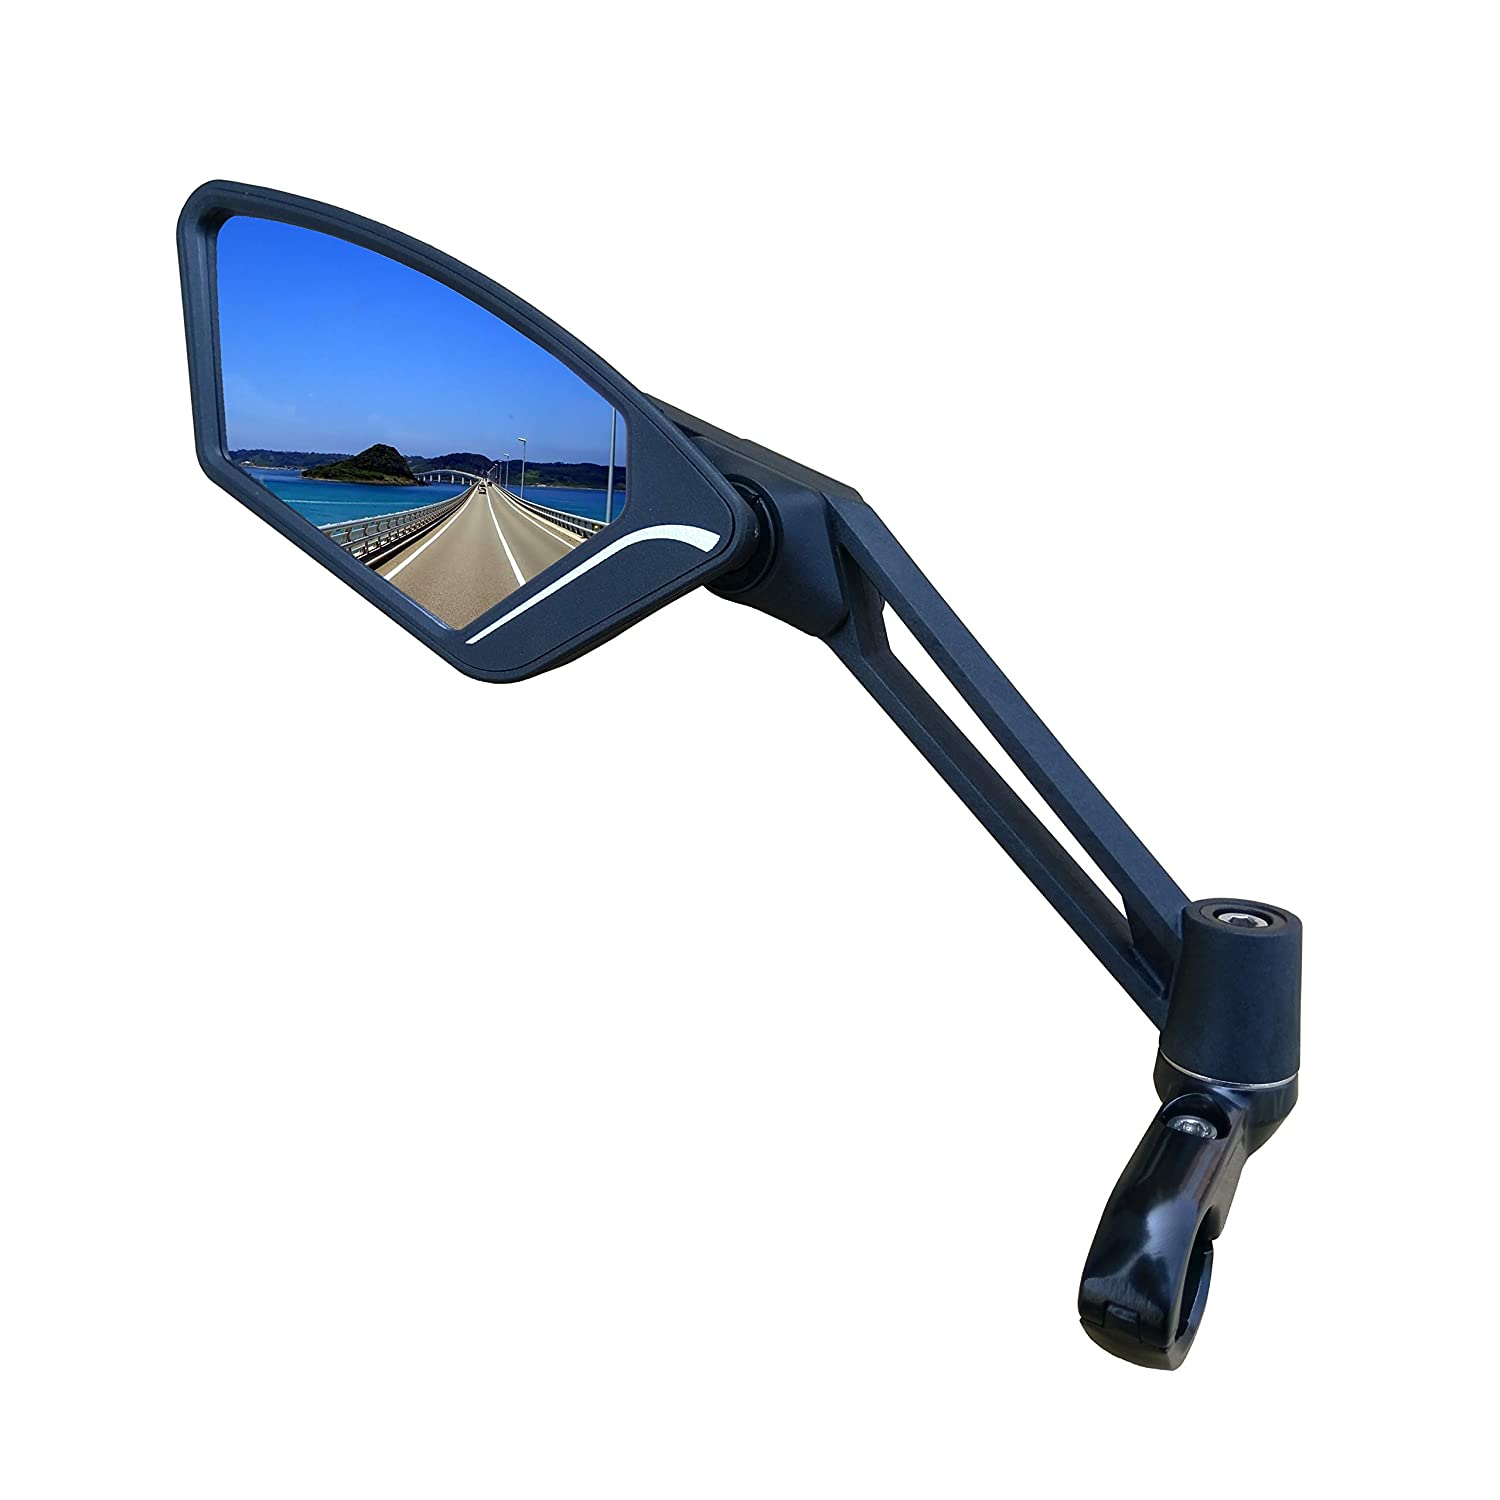 Scratch Resistant Glass.Meachow New Scratch Resistant Glass Lens Handlebar Bike Mirror Adjustable Safe Rearview Mirror Bicycle Mirror Me 003 2019